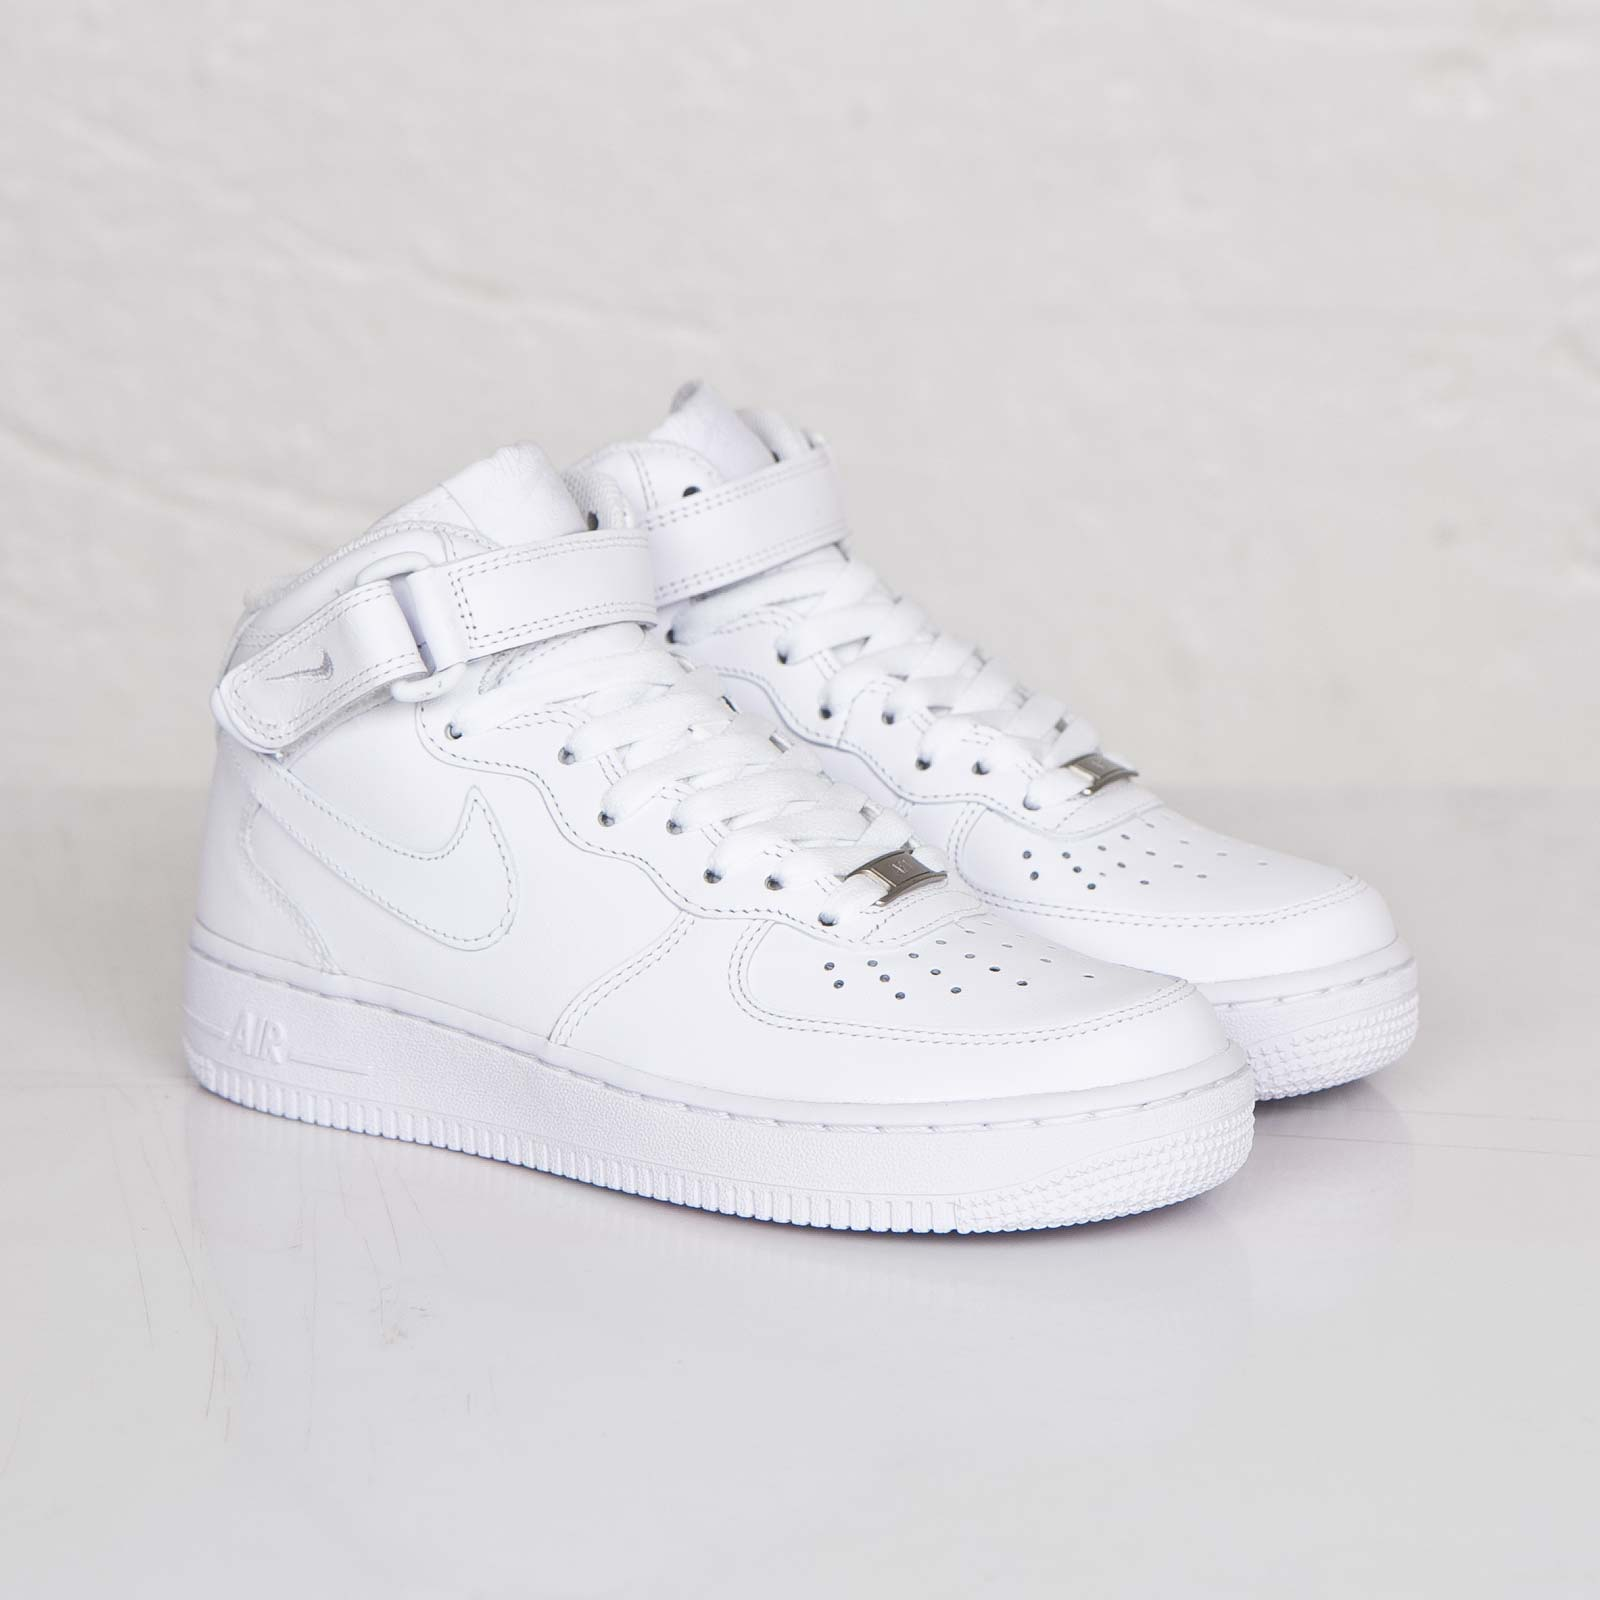 Nike Wmns Air Force 1 Mid 07 LE - 366731-100 - Sneakersnstuff ... 47c64aa868